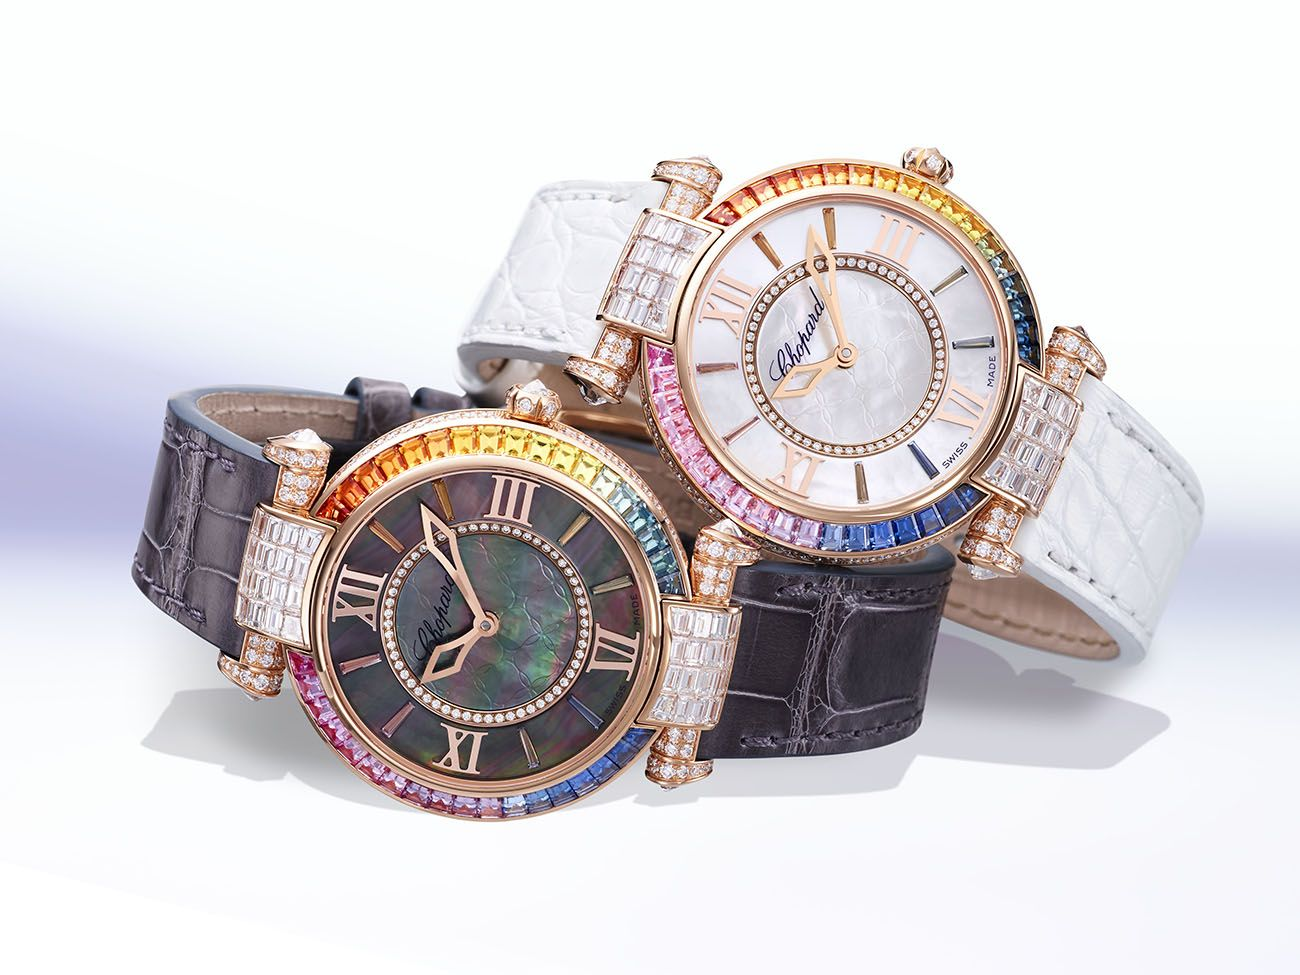 Rainbow Colours Have Found Their Way Onto Watches, And We Love It